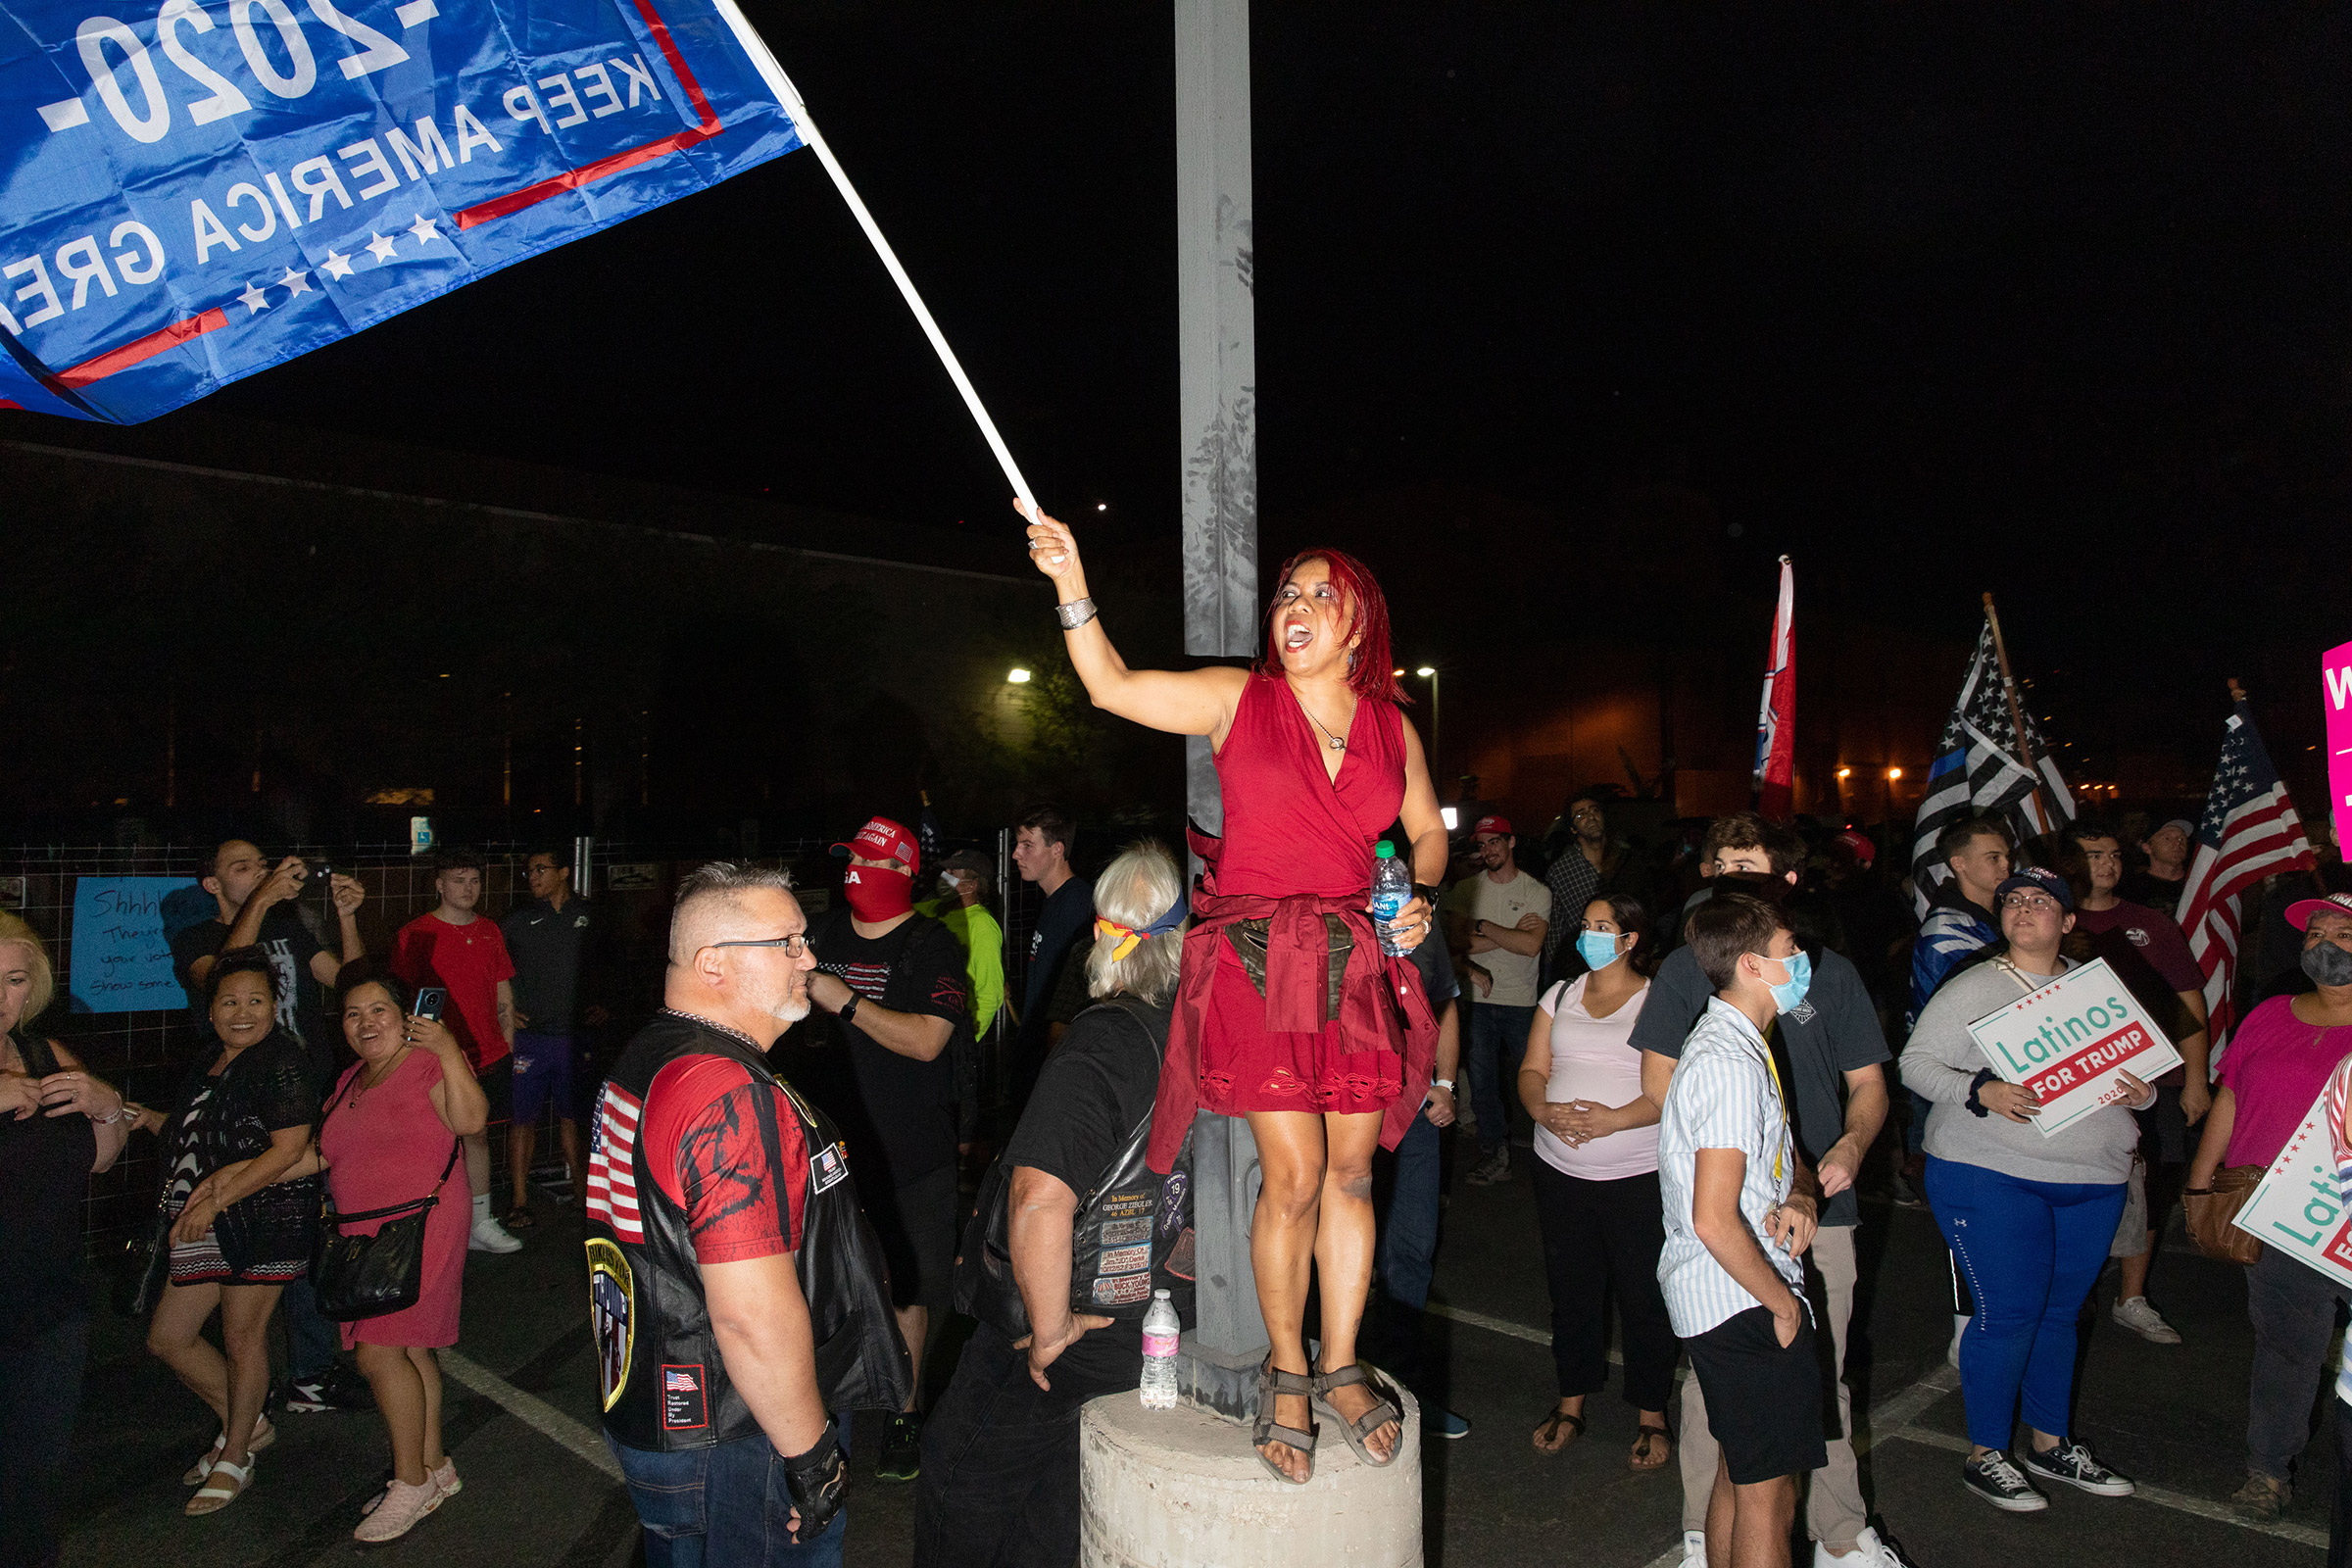 Trump supporters at the Maricopa County Elections office in Phoenix, Ariz., on Nov. 5, 2020.